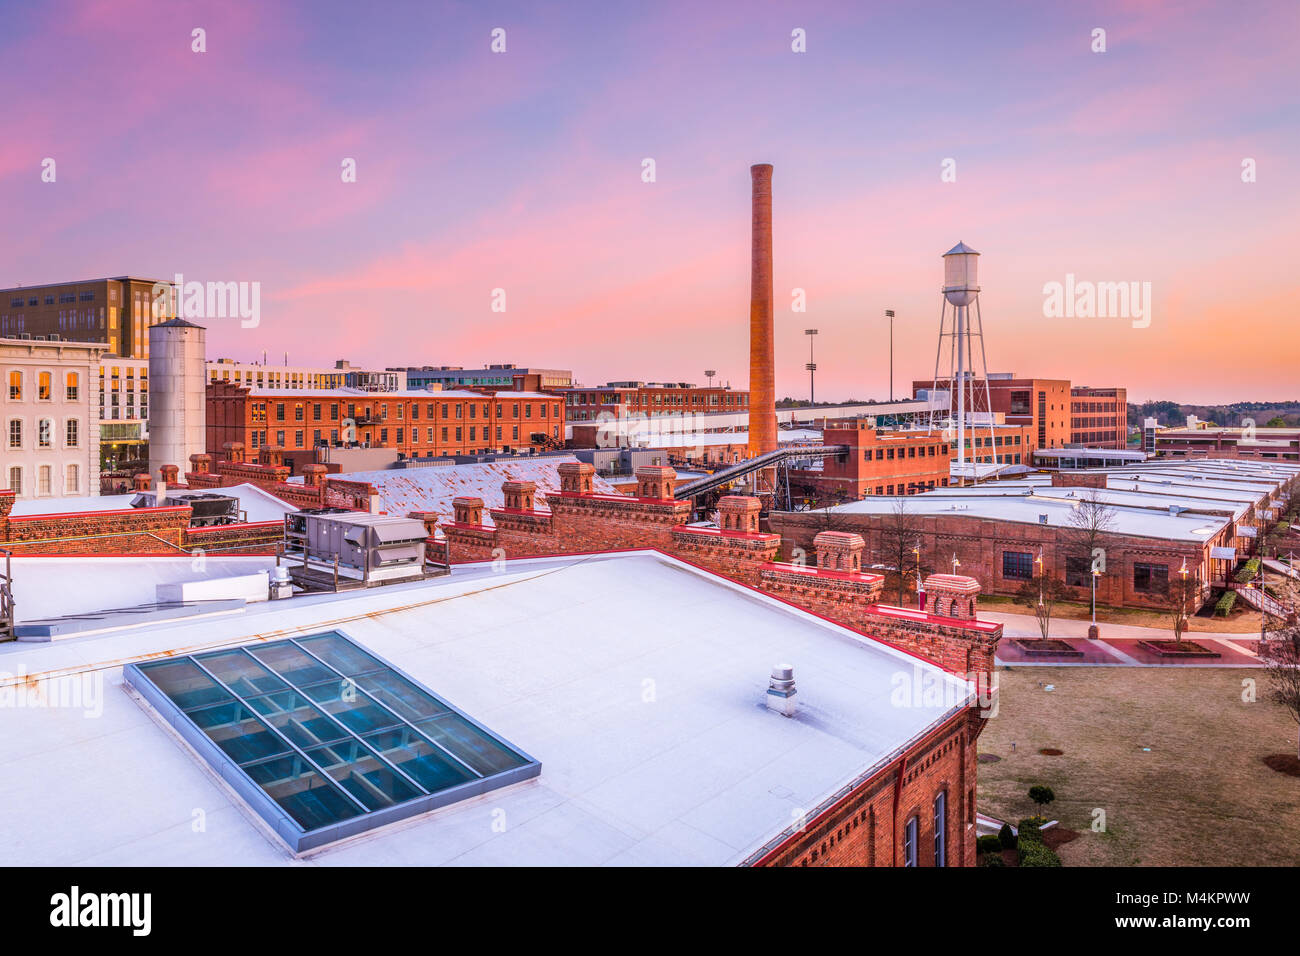 Durham, North Carolina, USA Skyline. - Stock Image